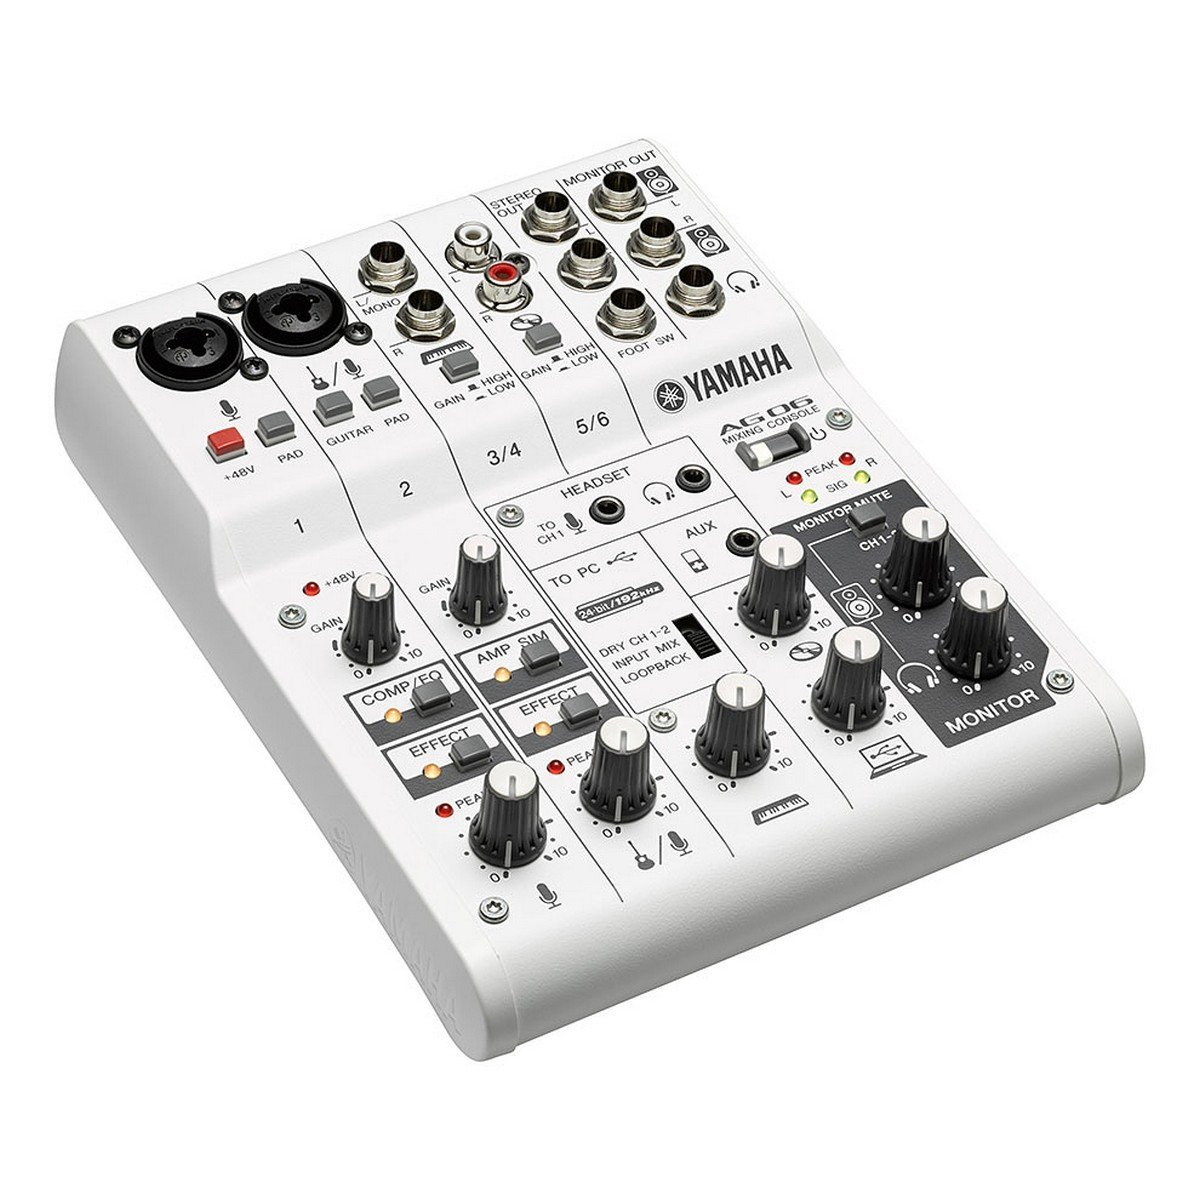 Make For Yamaha AG06 Network Live K Song With Sound Card Sound Console